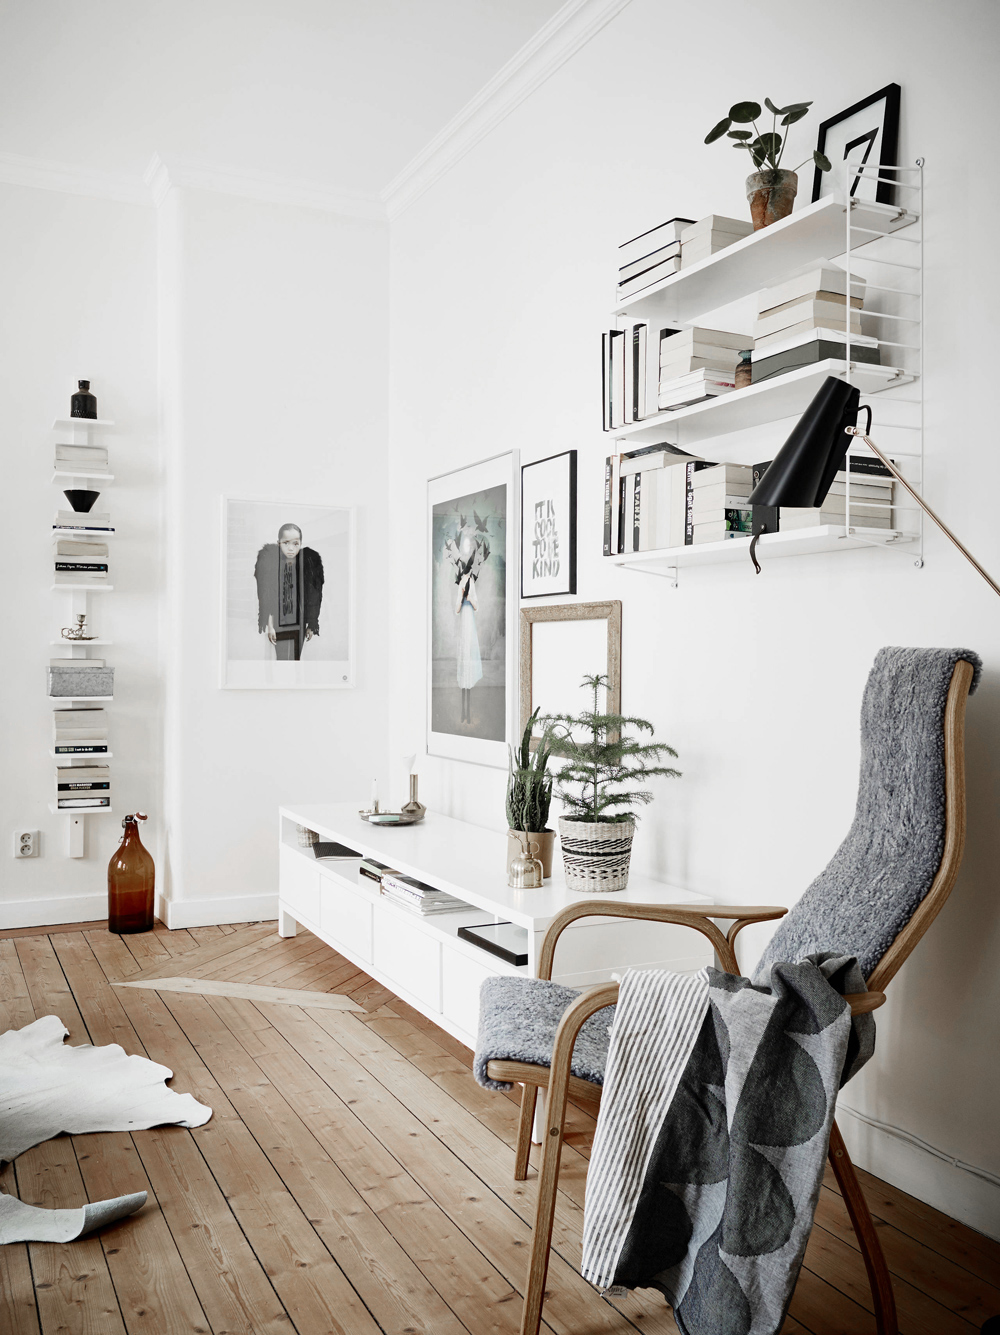 Oracle, Fox, Sunday, Sanctuary, Art, Wall, Gallery, Wall, Interior, Picture, Wall, Scandinavian, style